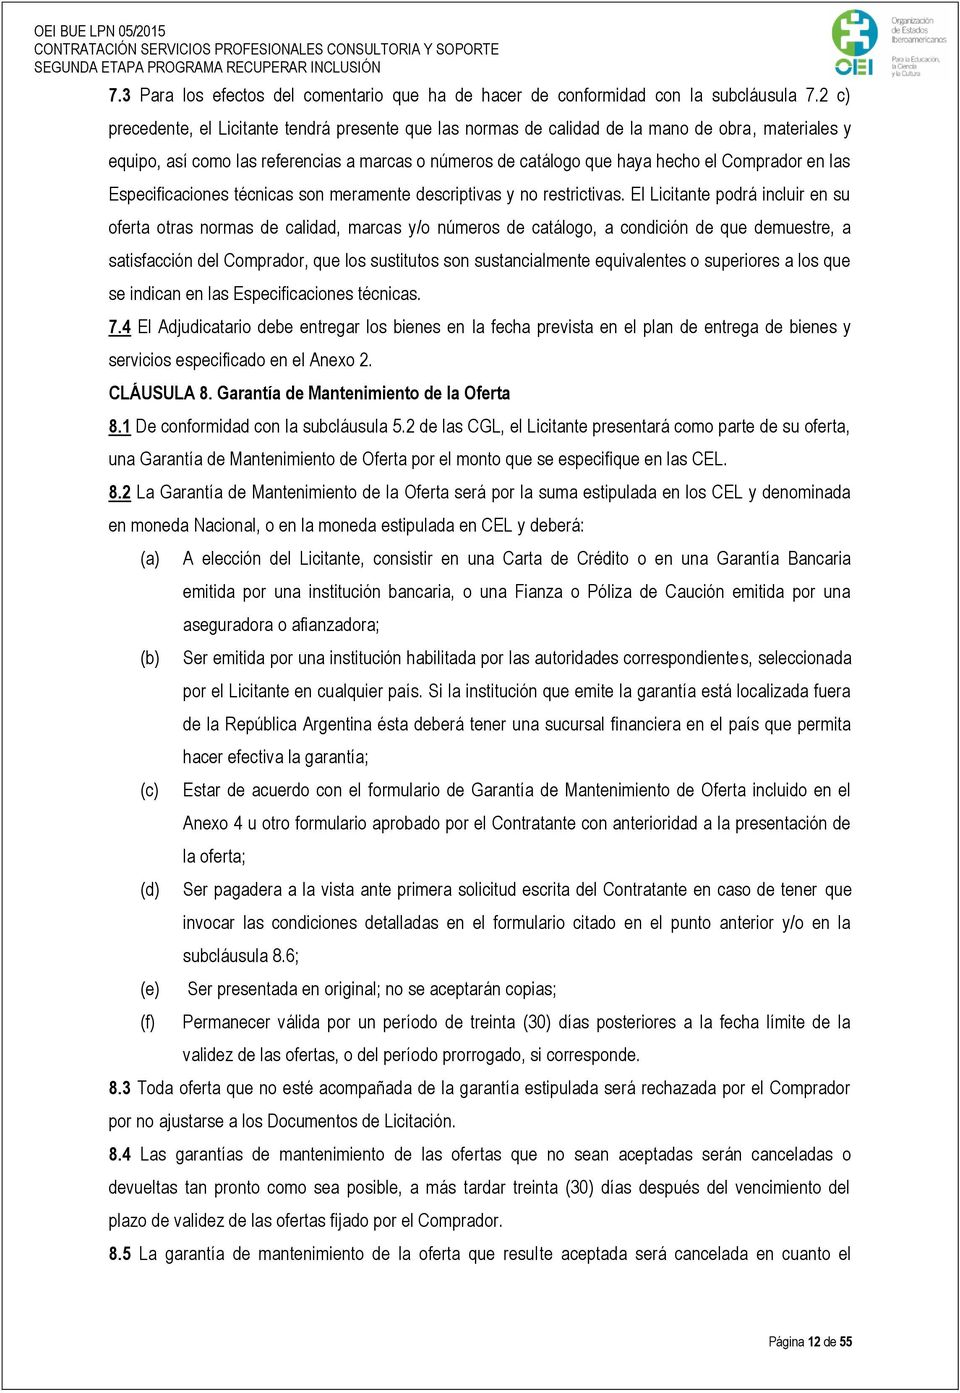 las Especificaciones técnicas son meramente descriptivas y no restrictivas.